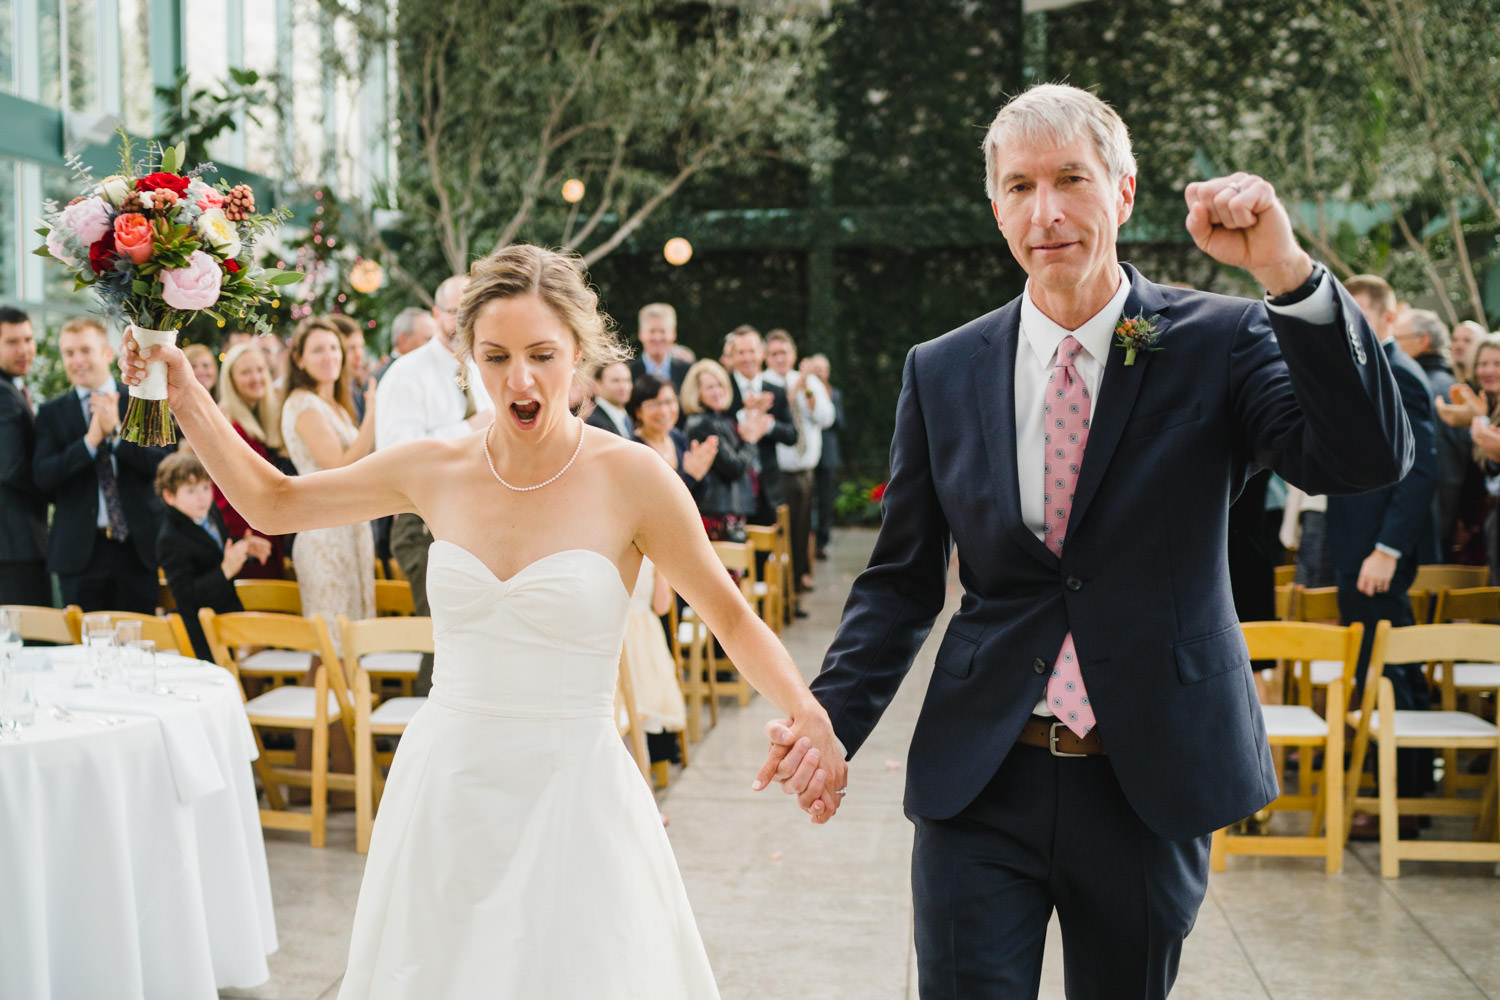 Red Butte Garden wedding bride and groom cheering after ceremony photo